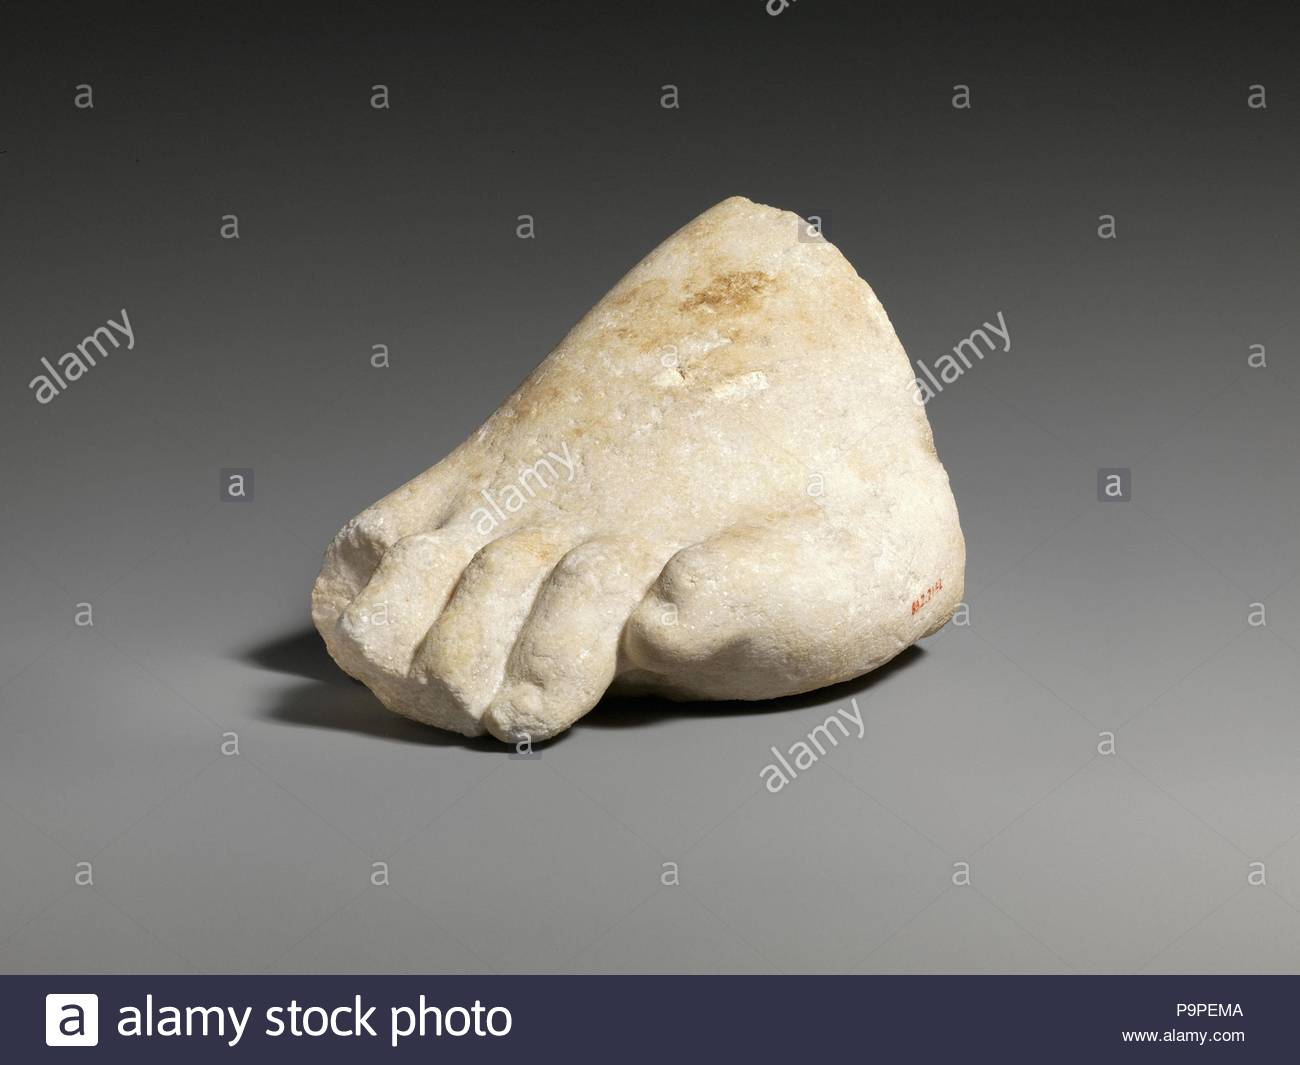 Part of the left foot of a colossal marble statue, Roman, 3rd–2nd century B.C., Greek, Marble, Other: 4 3/4 x 7 5/16 in. (12.1 x 18.6 cm), Stone Sculpture. - Stock Image